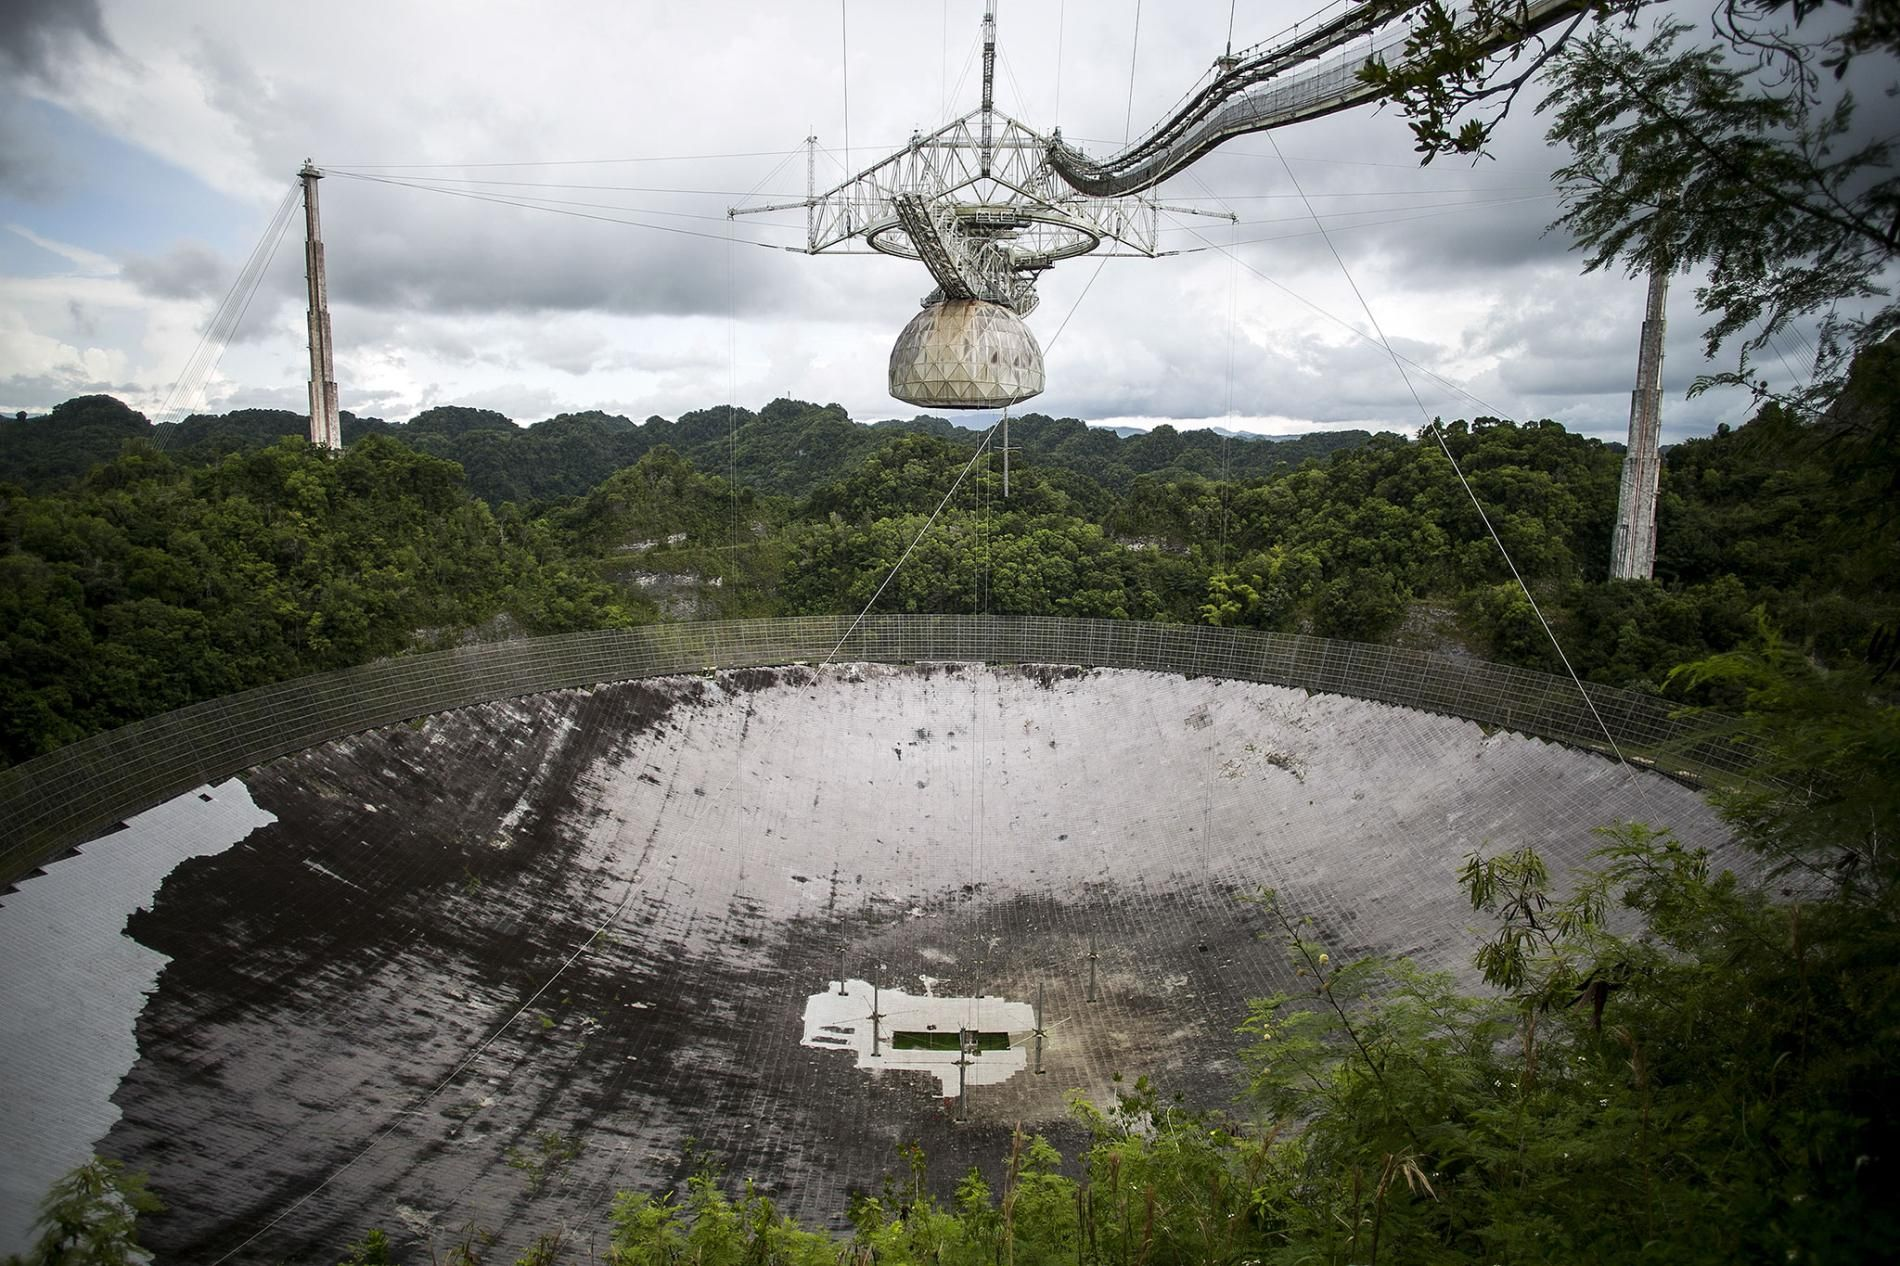 Hurricane Damages Giant Radio Telescope What You Need To Know Hurricane Damage Mysterious Radio Telescope